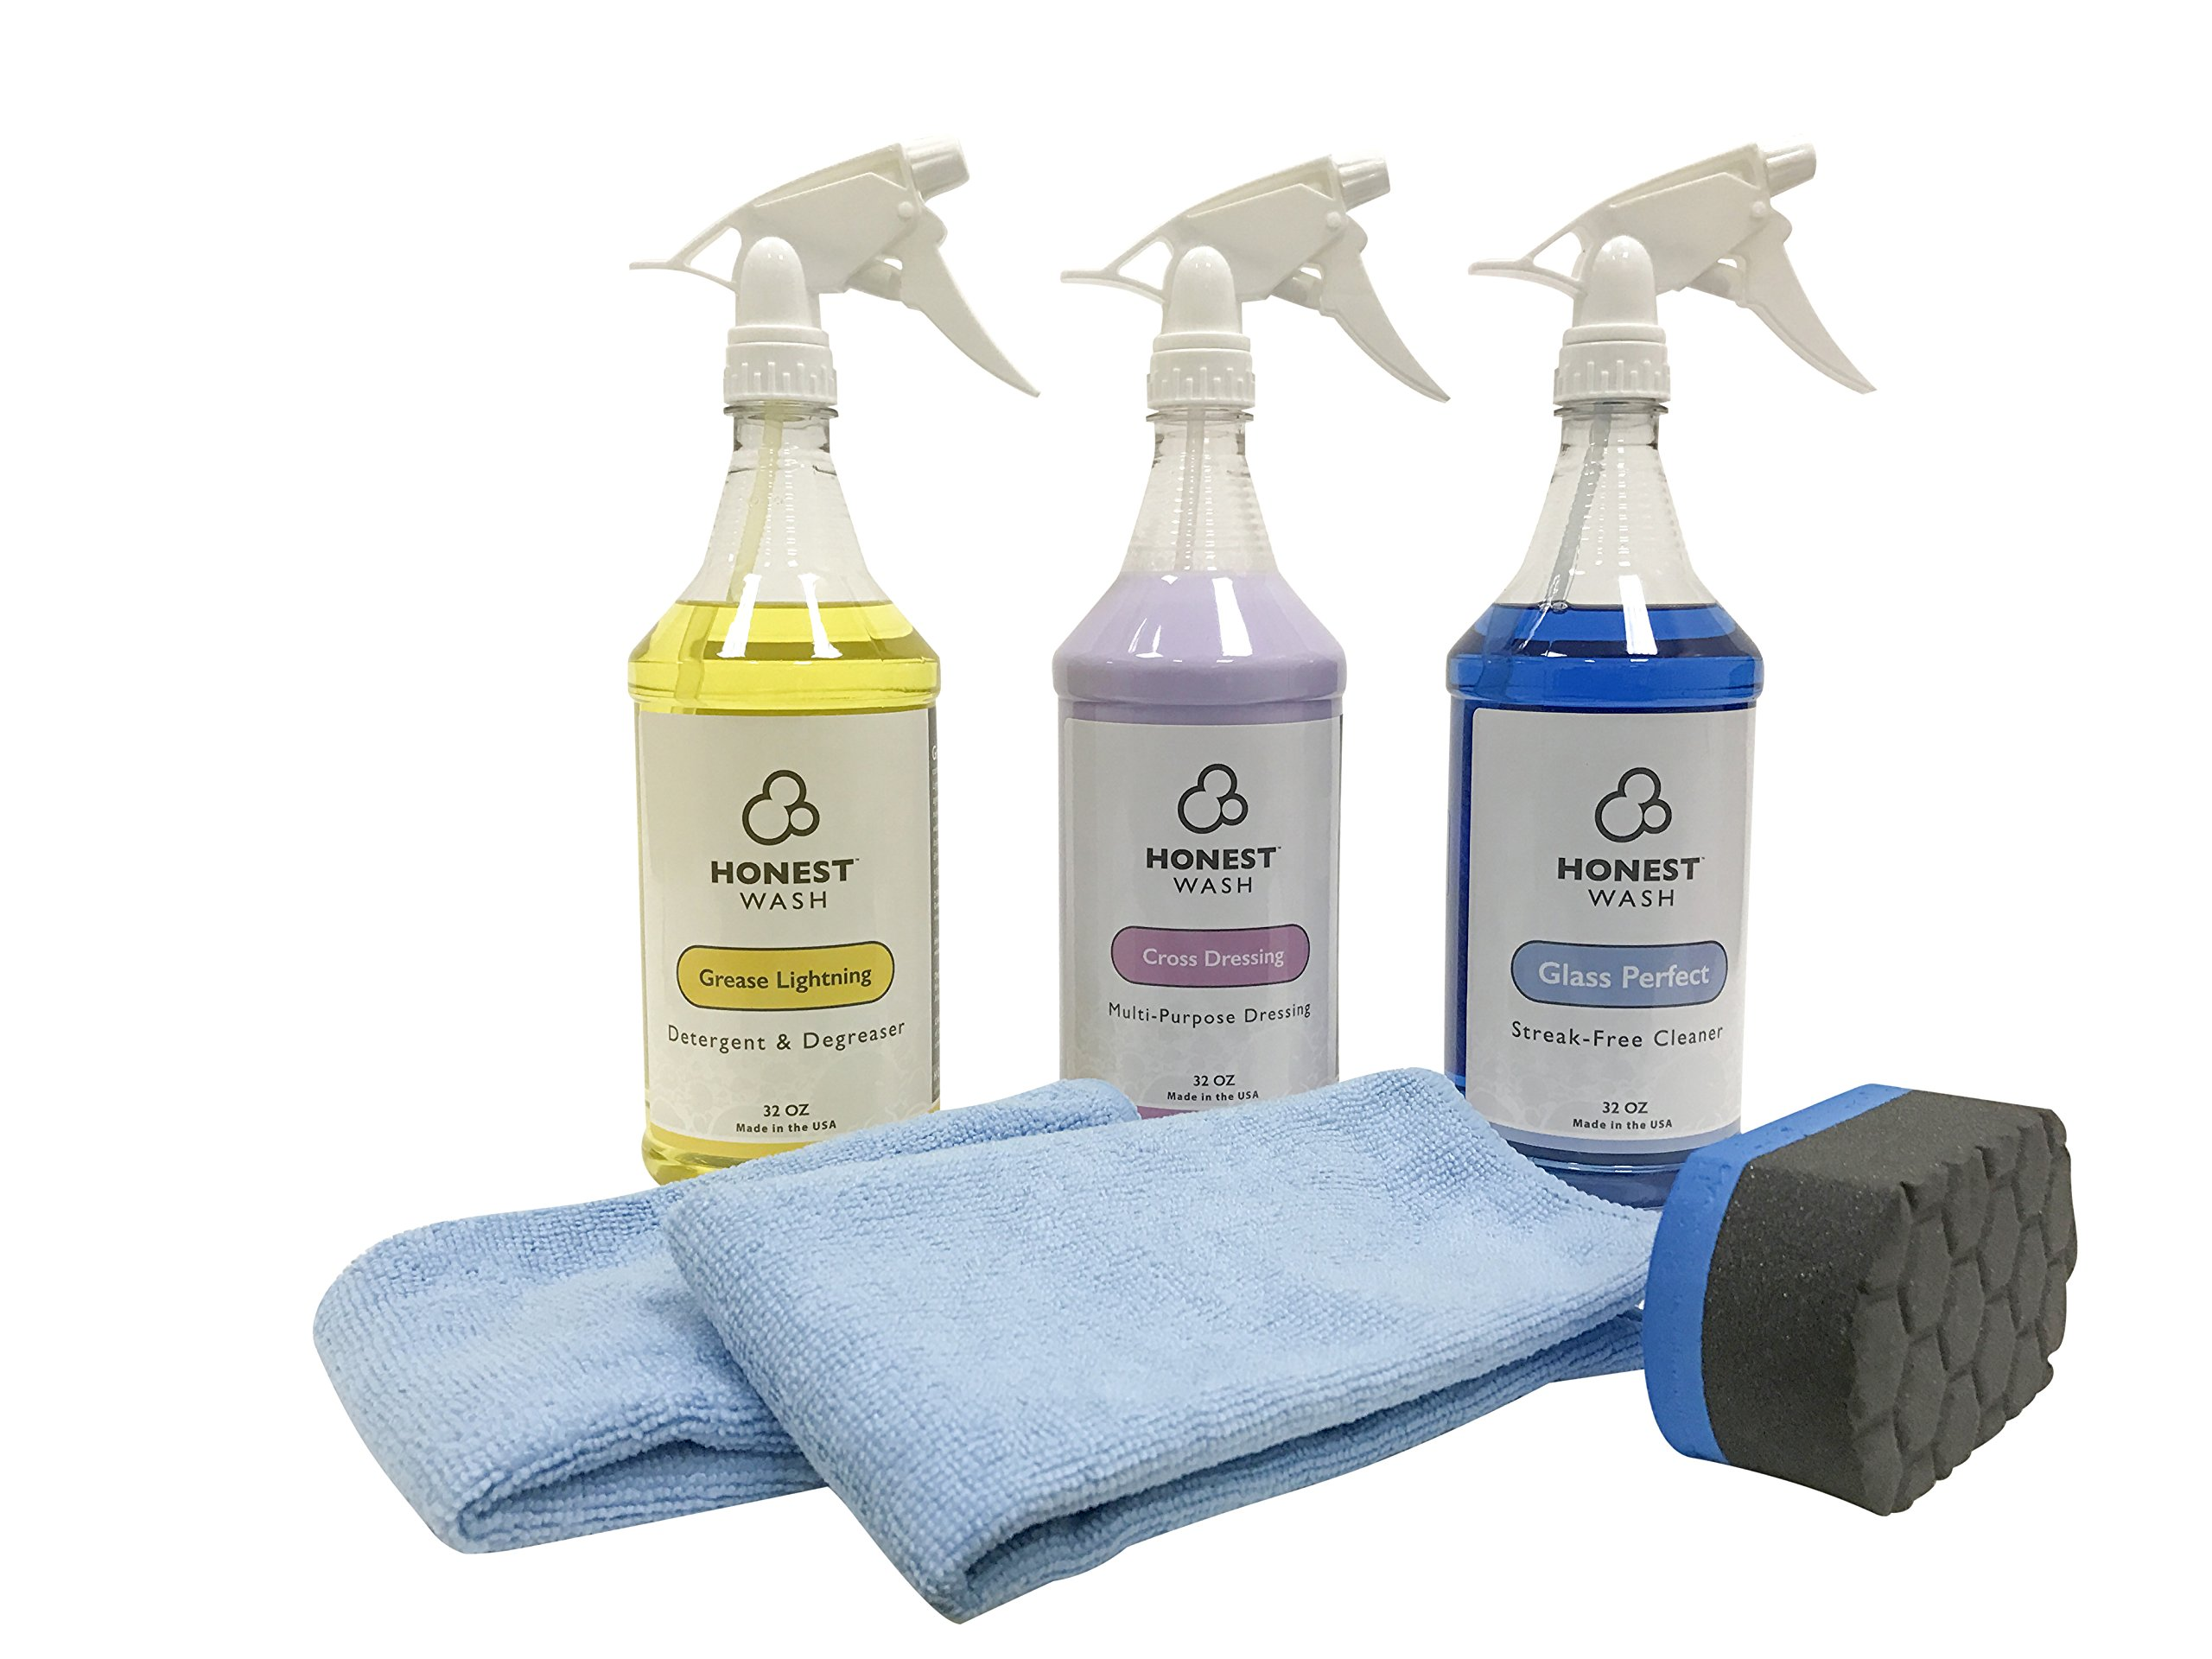 Honest Wash Interior Cleaning Kit - Everything to Clean the Interior of your Car, Truck, or SUV - Includes Glass Cleaner, Fabric Cleaner, Shine & Protectant for Panels, Microfiber Towels, & Applicator